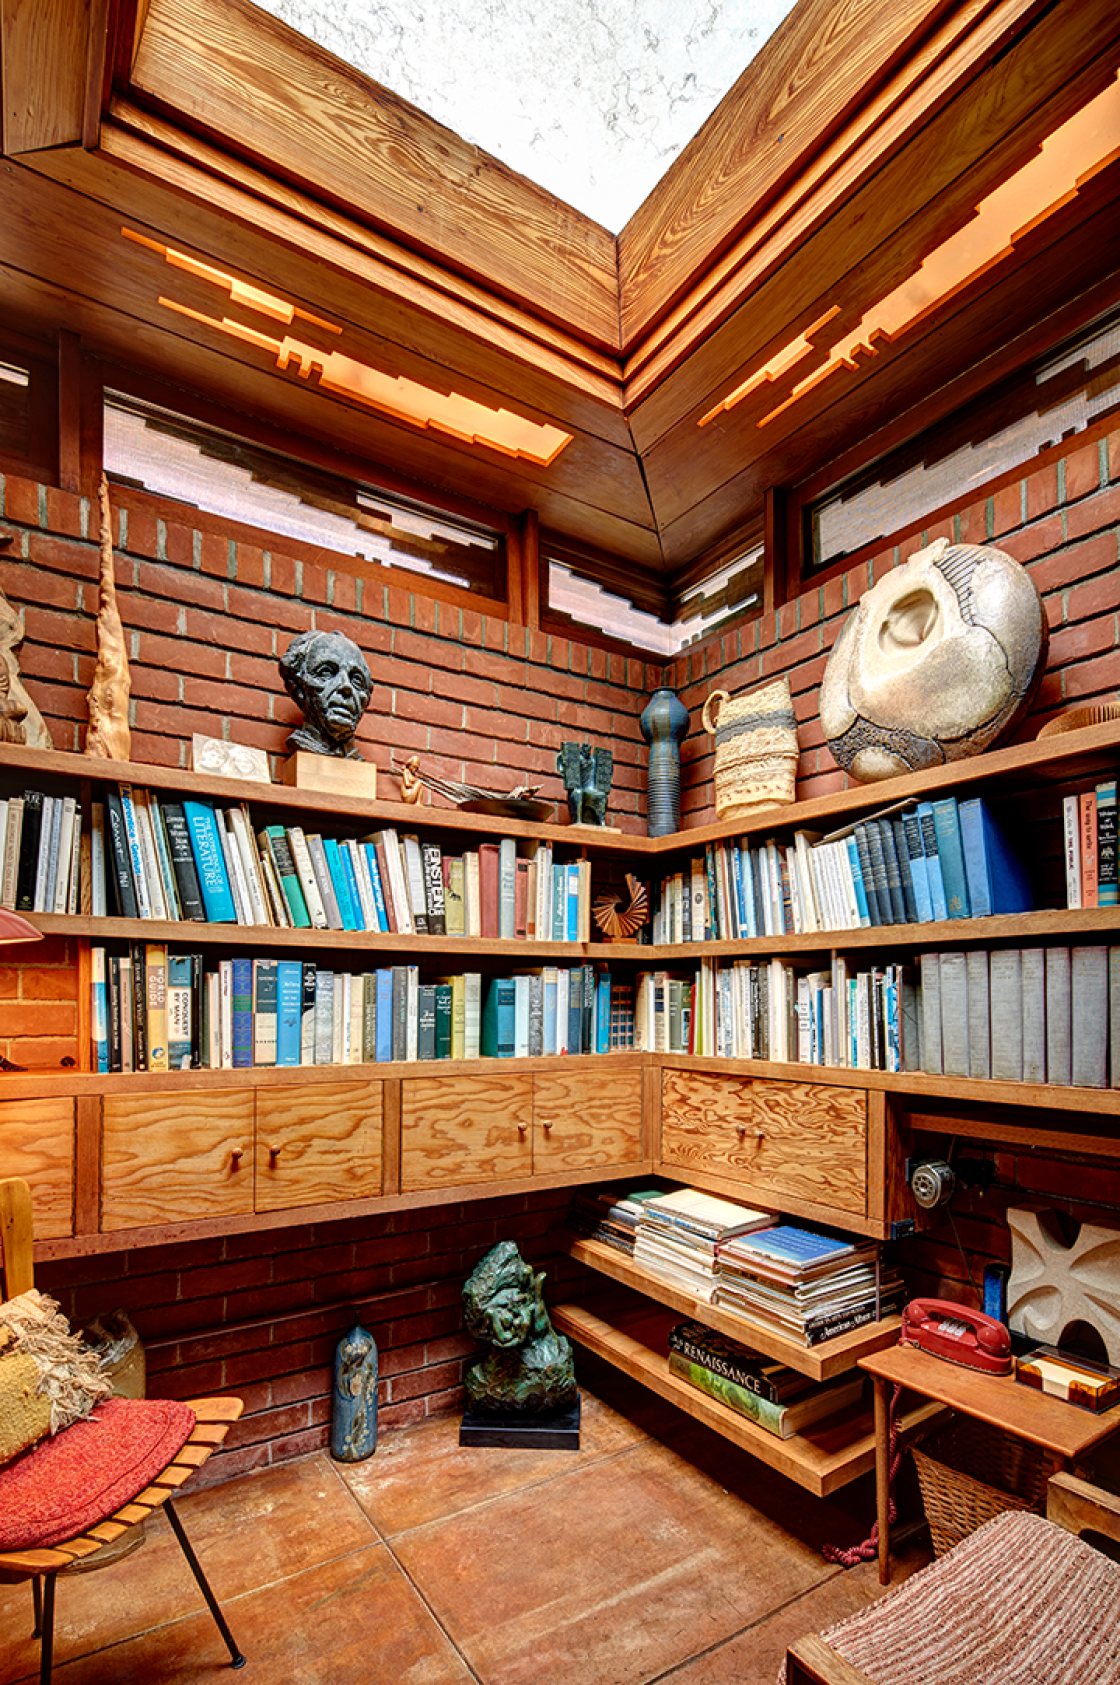 Frank Lloyd Wright Smith House library photograph by James Haefner